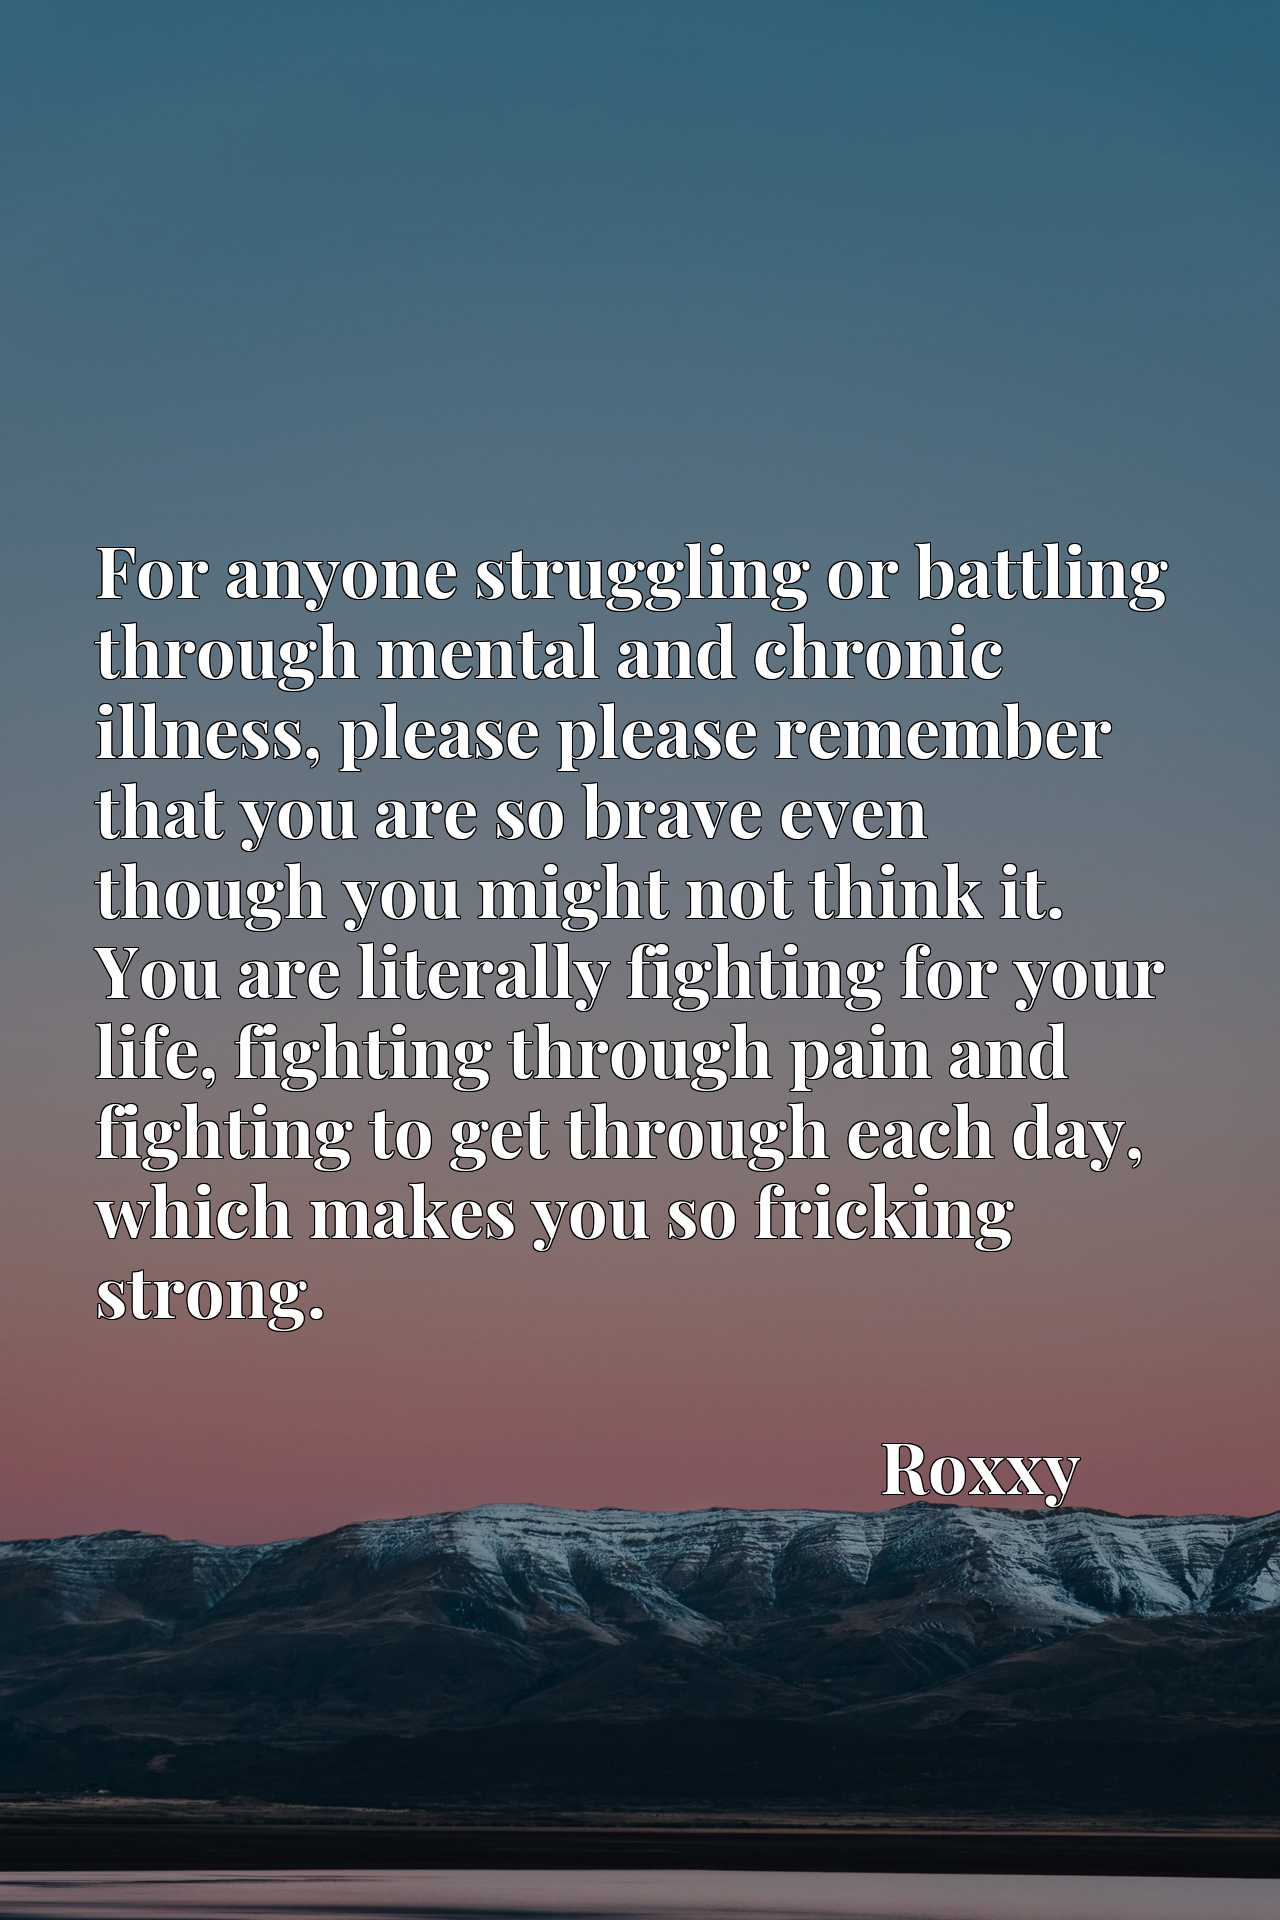 For anyone struggling or battling through mental and chronic illness, please please remember that you are so brave even though you might not think it. You are literally fighting for your life, fighting through pain and fighting to get through each day, which makes you so fricking strong.